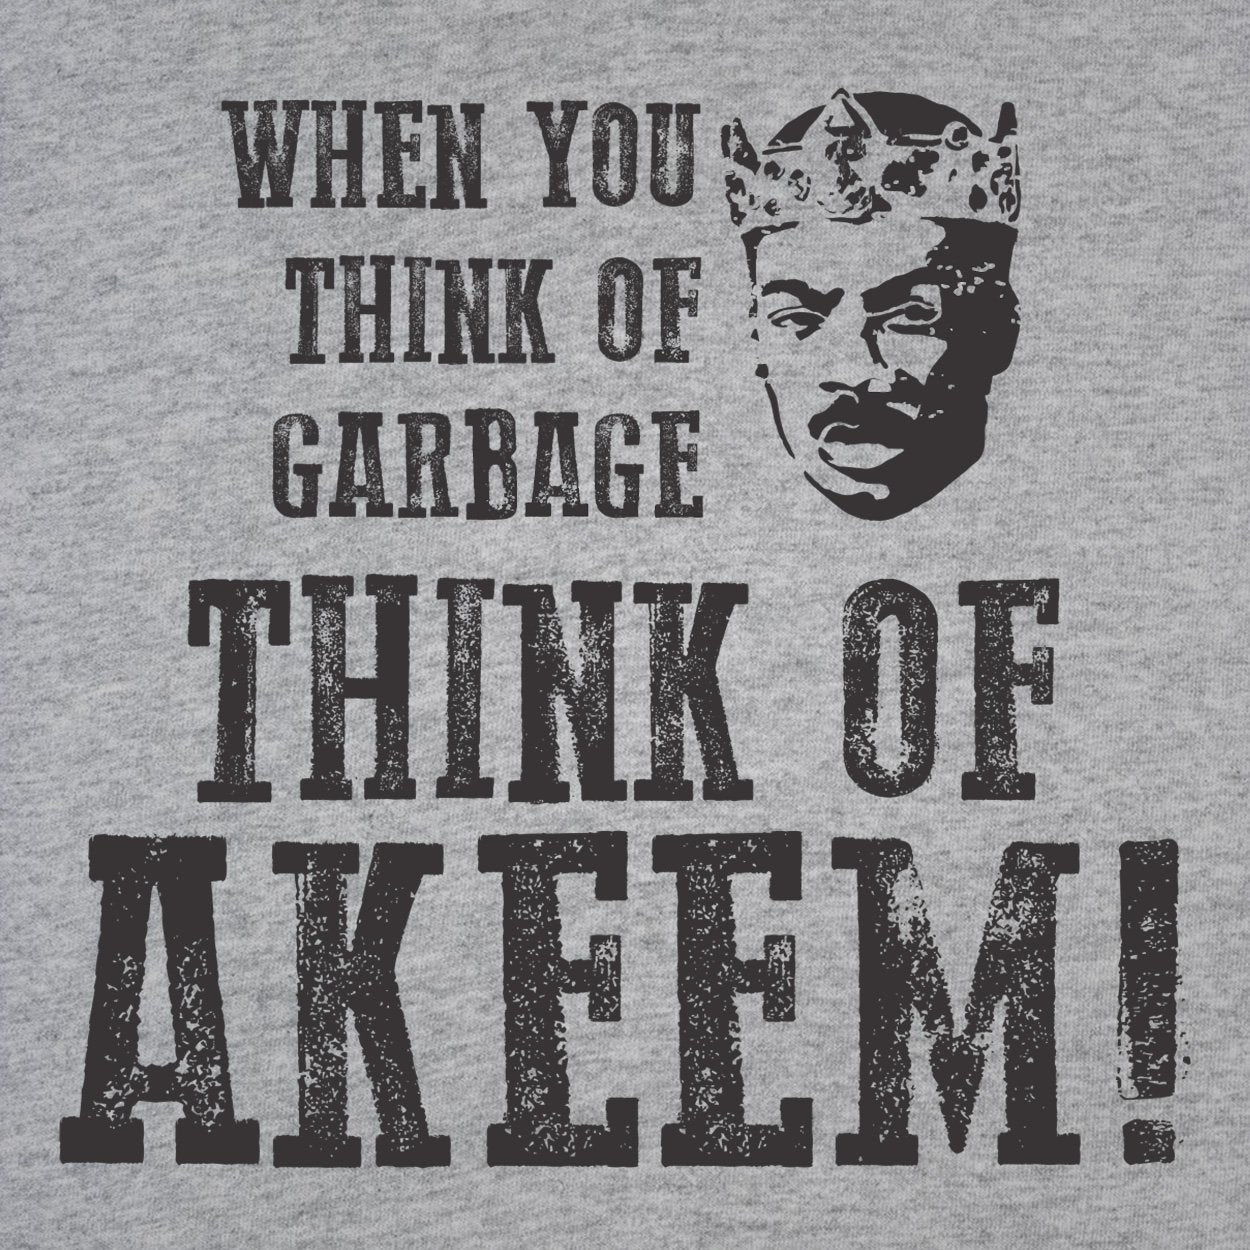 When You Think Of Garbage Akeem - DonkeyTees